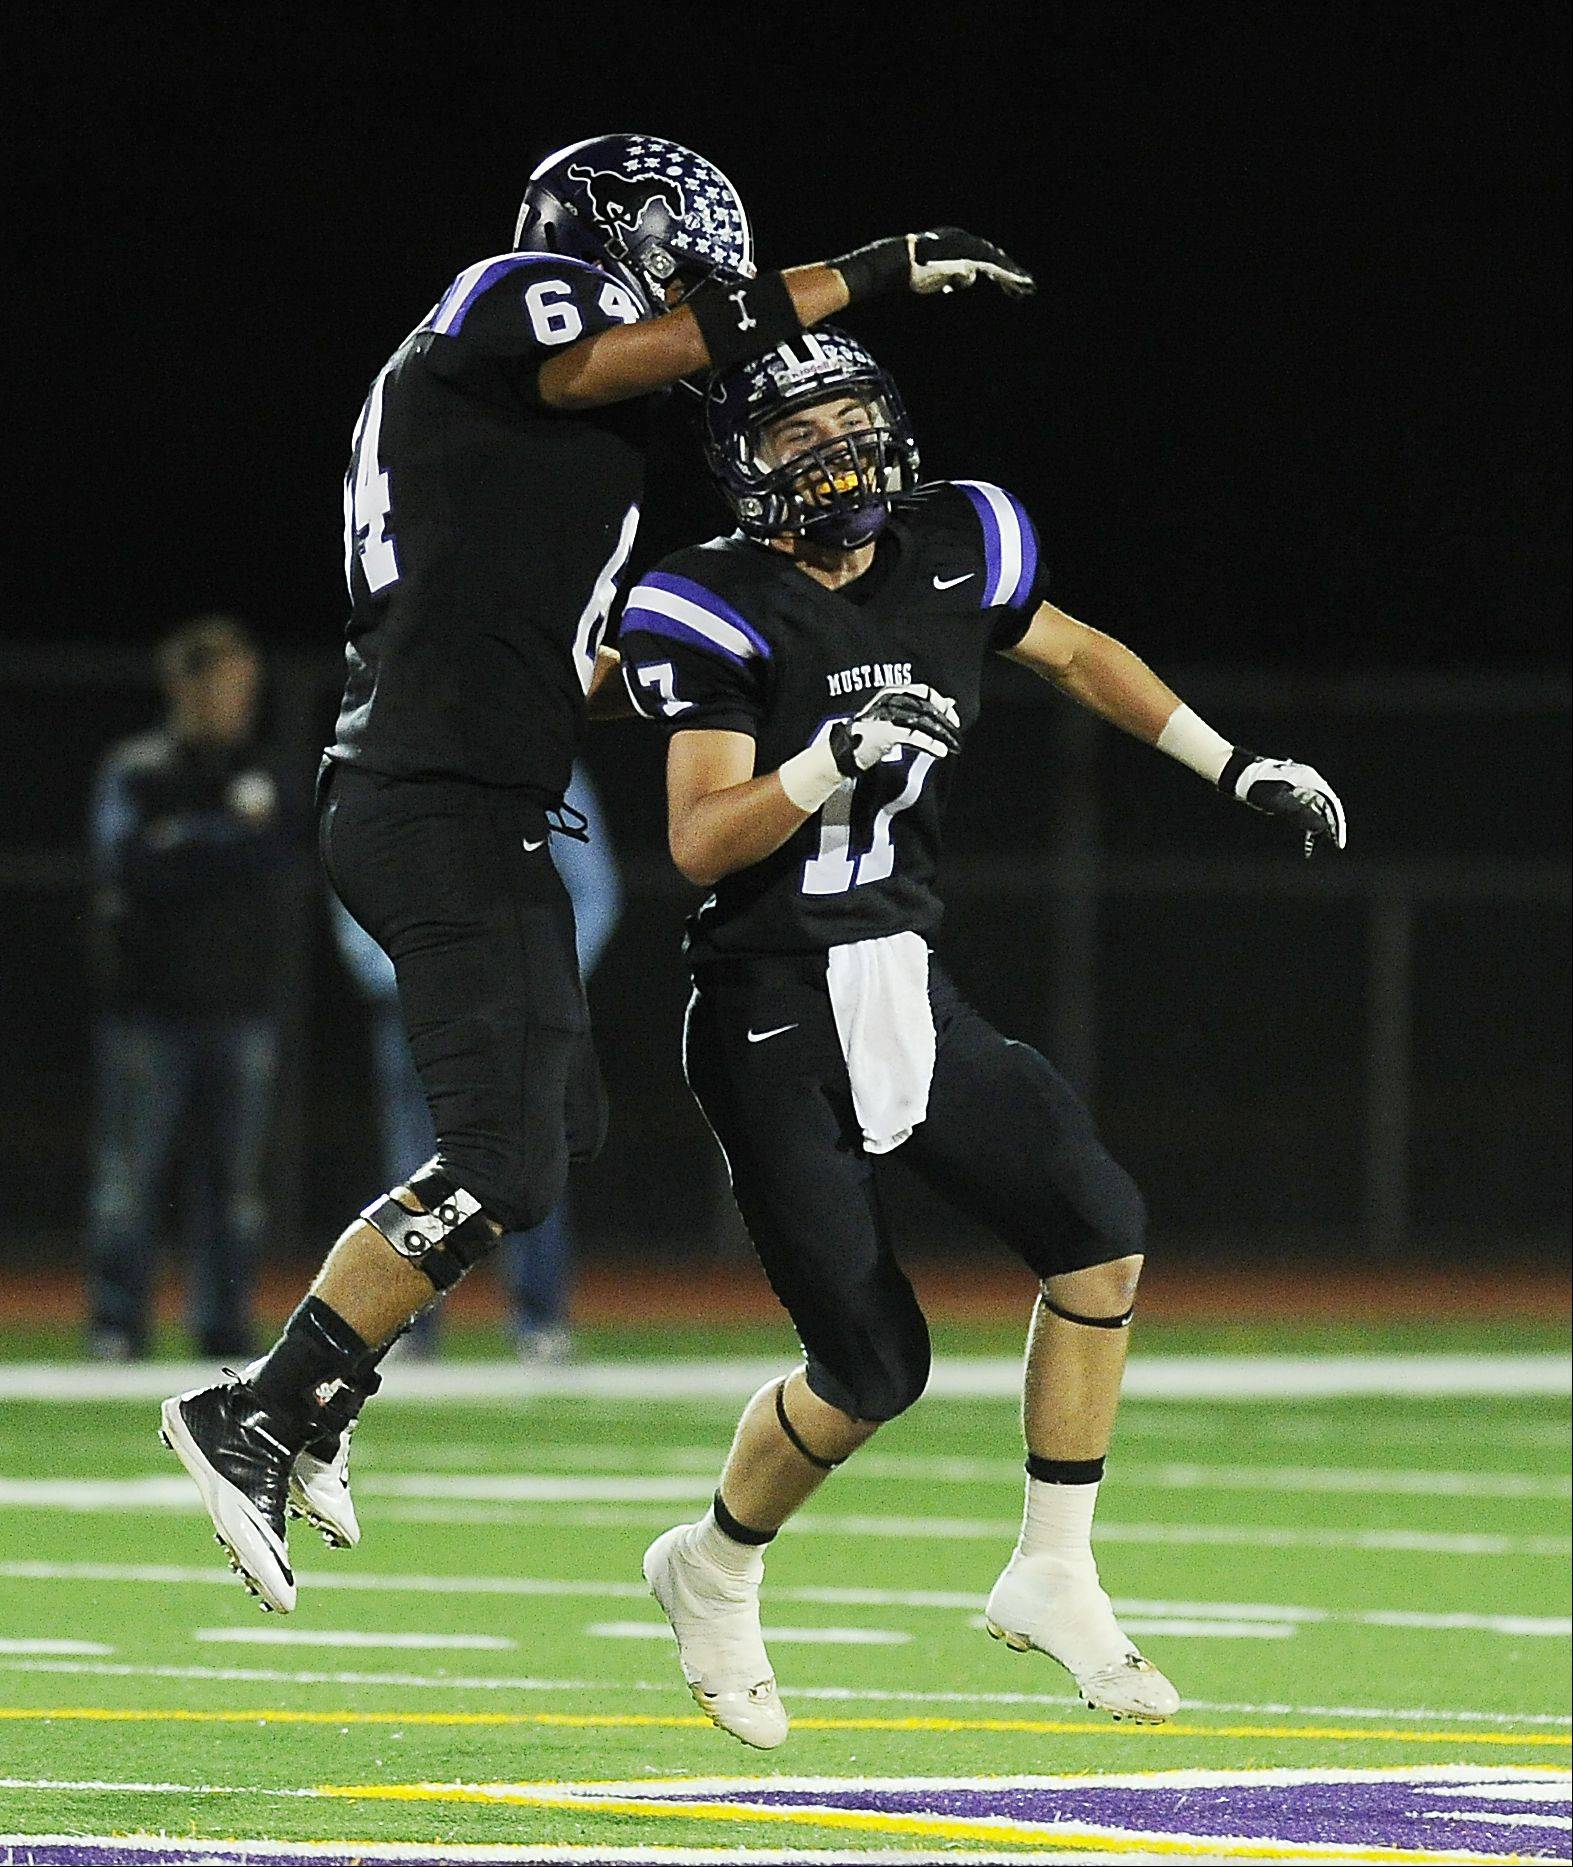 Rolling Meadows' Jacob Grant celebrates a sack of Prospect's quarterback Devin O'Hara with Mustang teammate Raul Alba-Cortez in the first half.